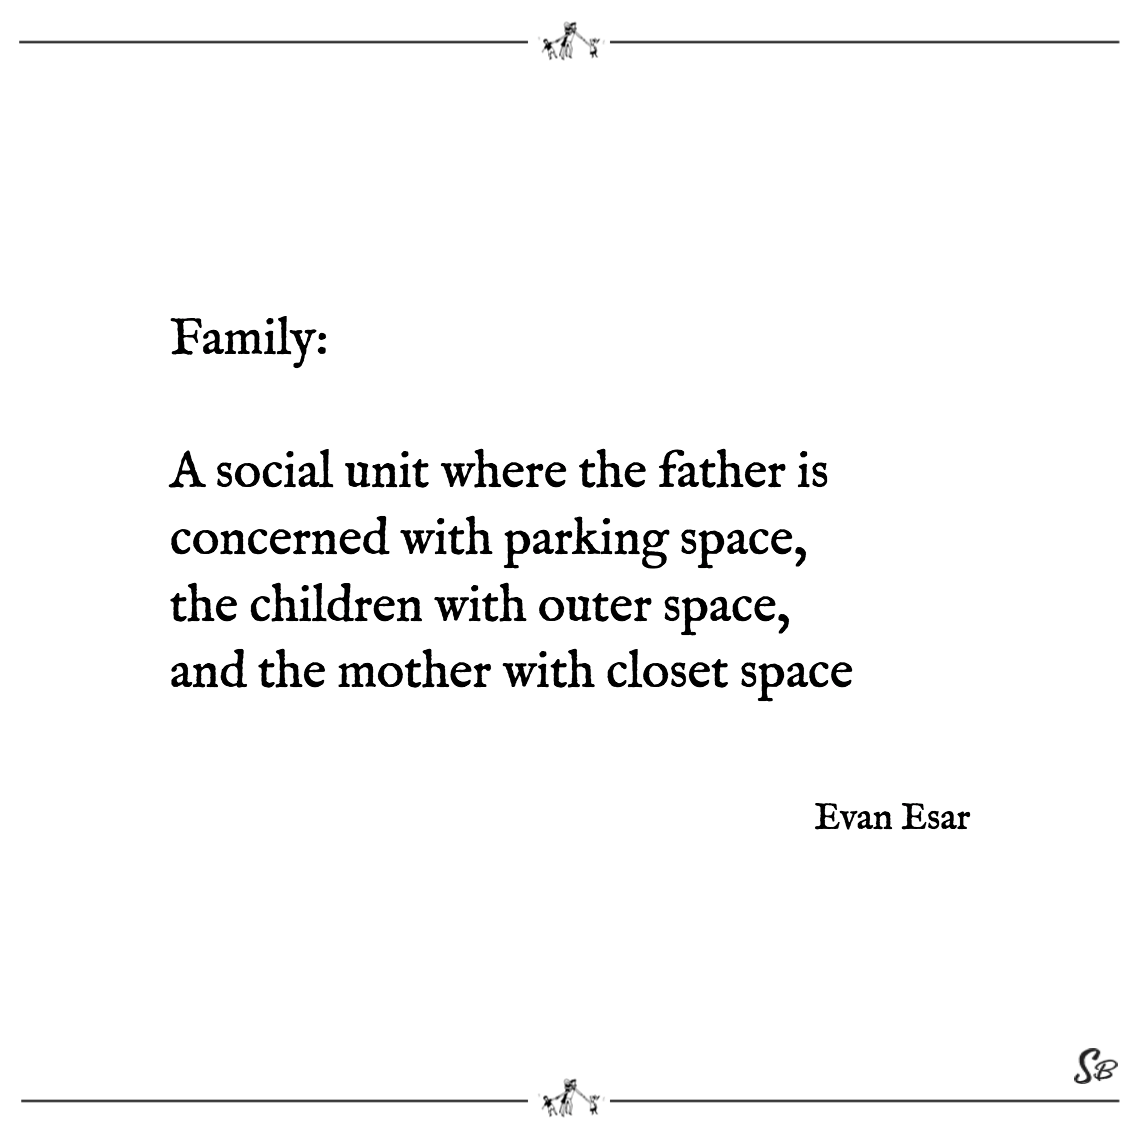 Family a social unit where the father is concerned with parking space, the children with outer space, and the mother with closet space evan esar